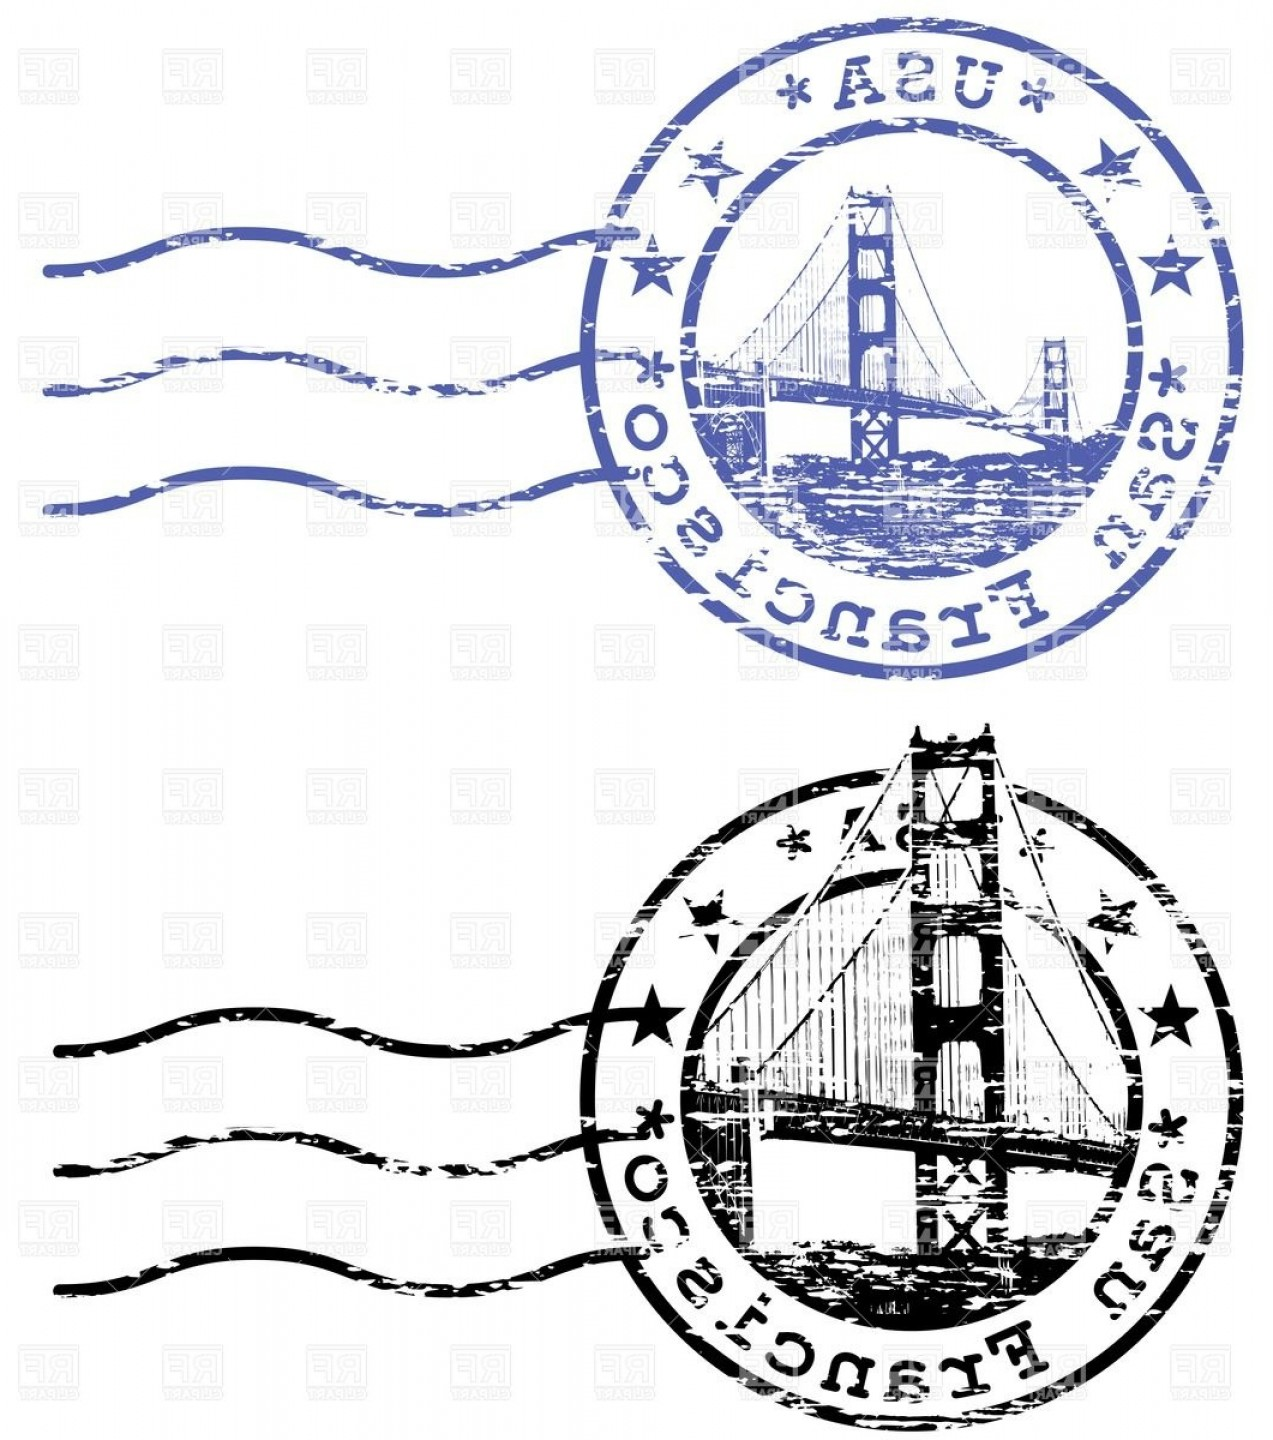 California Seal Vector EPS: Shabby Stamp With Cityscape Of San Francisco And Golden Gate Sights Of California Vector Clipart